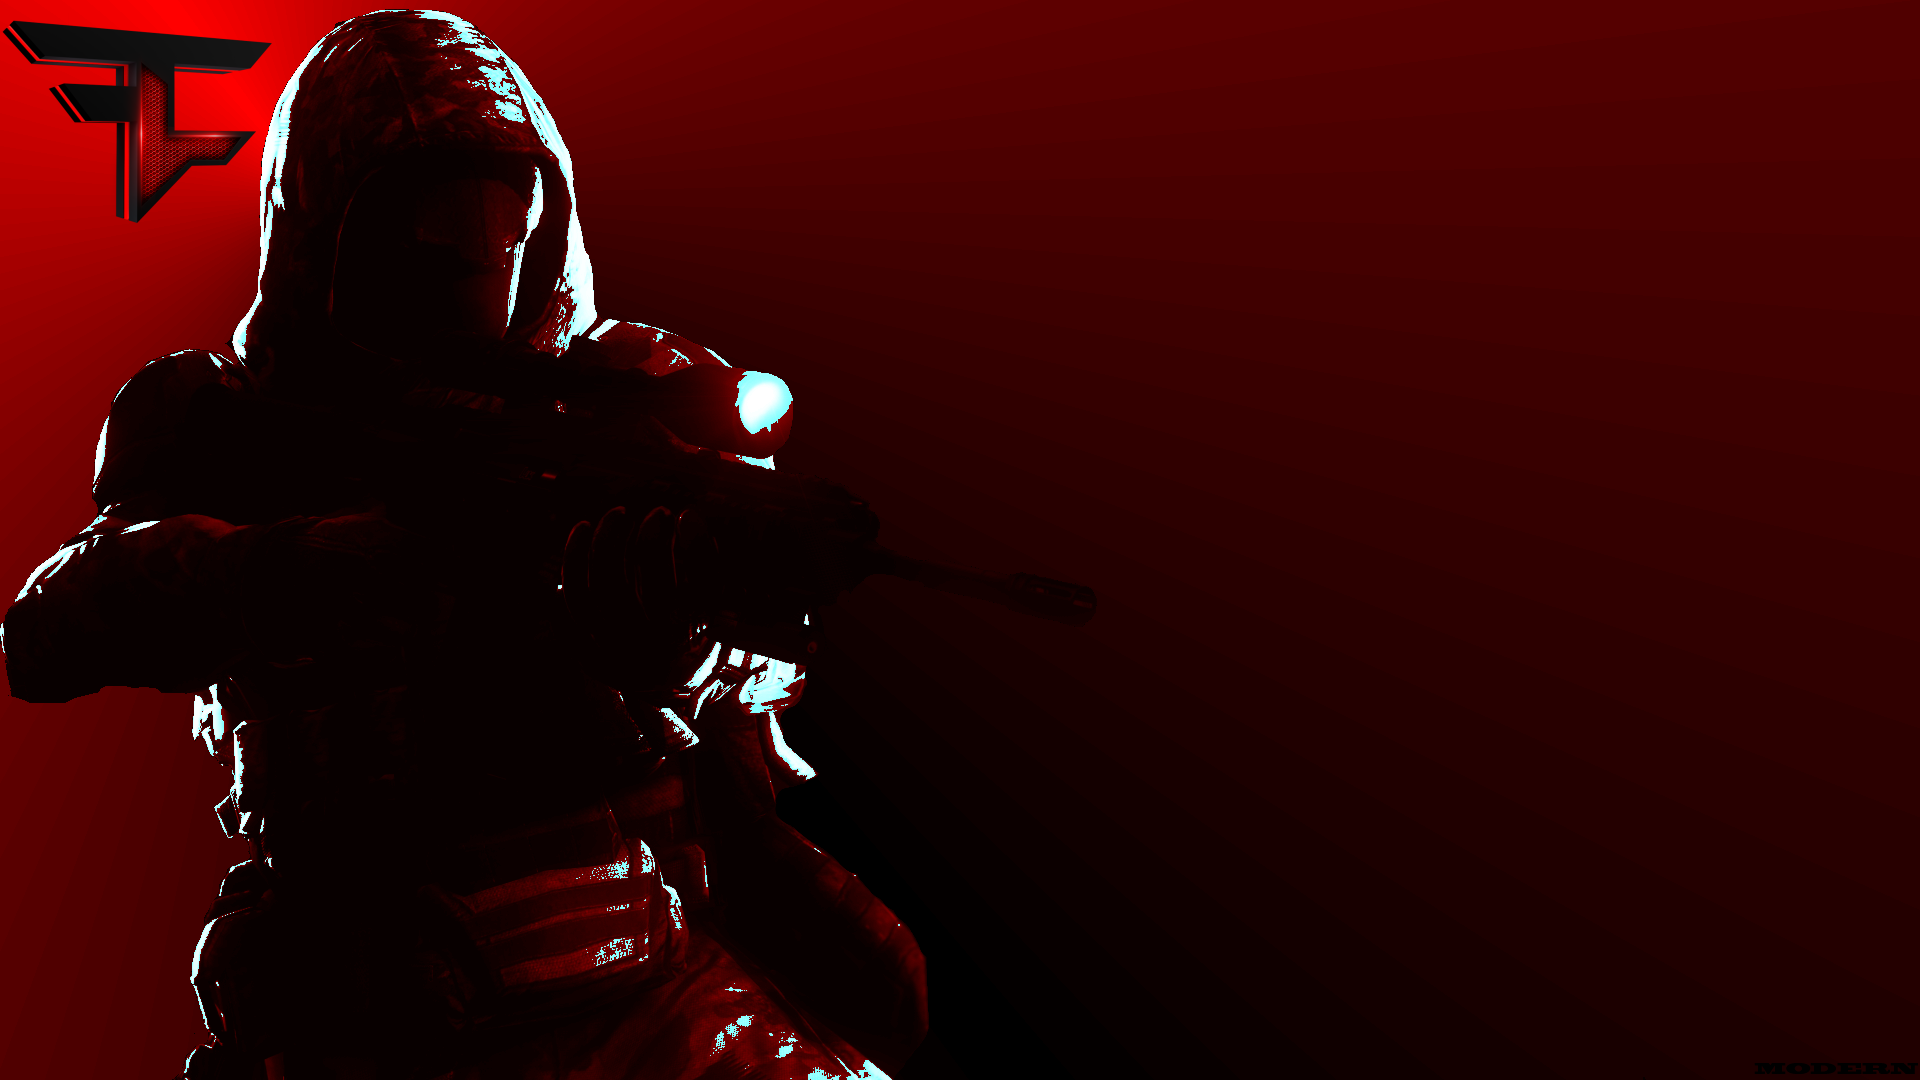 fazeclan wallpaper hdfaze clan background uzmfs7f5png 1920x1080